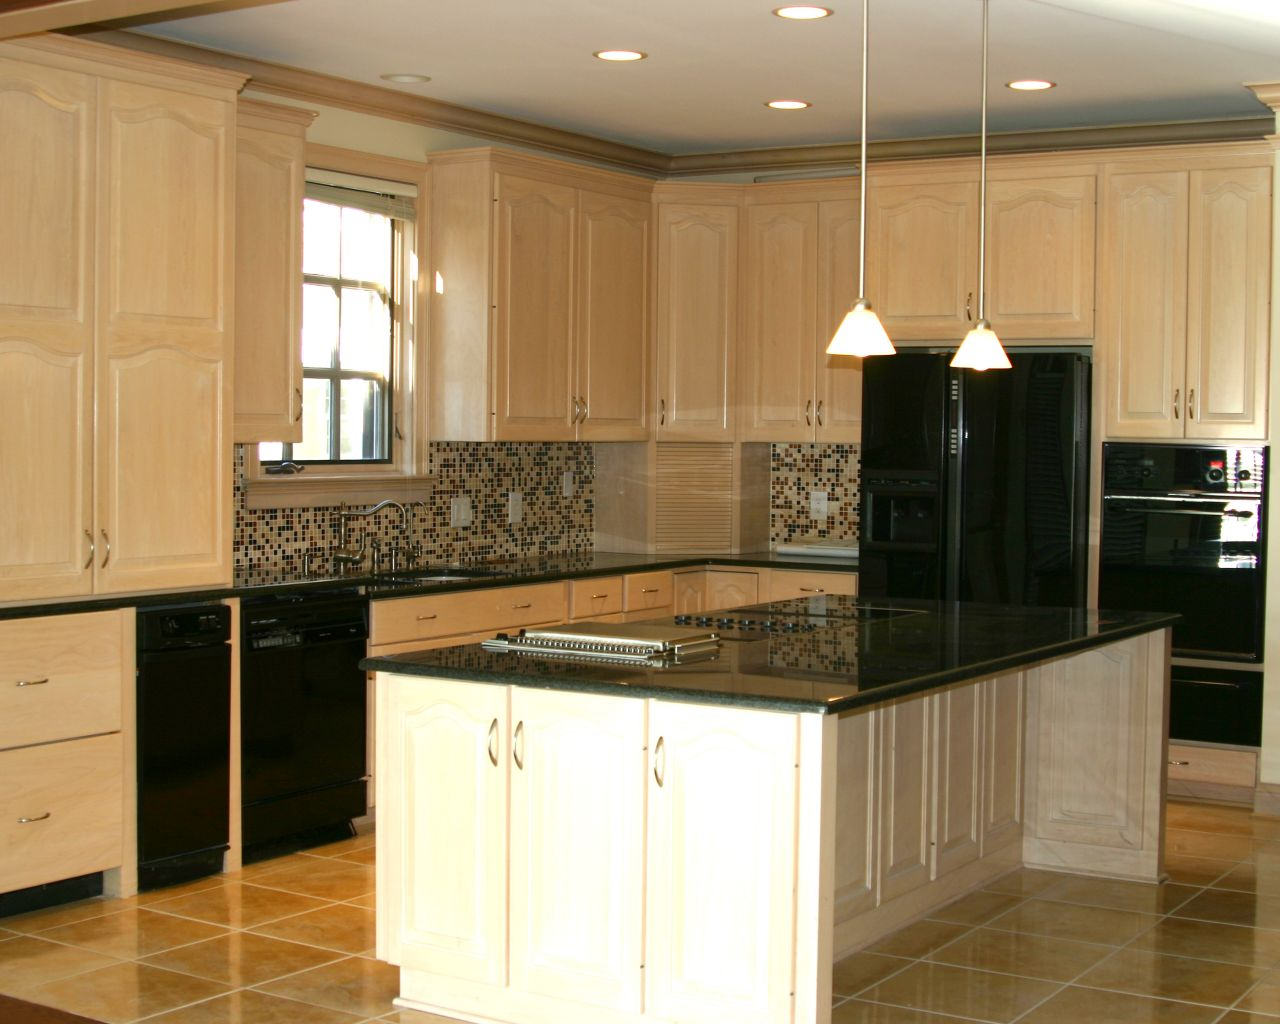 Kitchen Islands Are Still An Important Item In Remodeling Projects